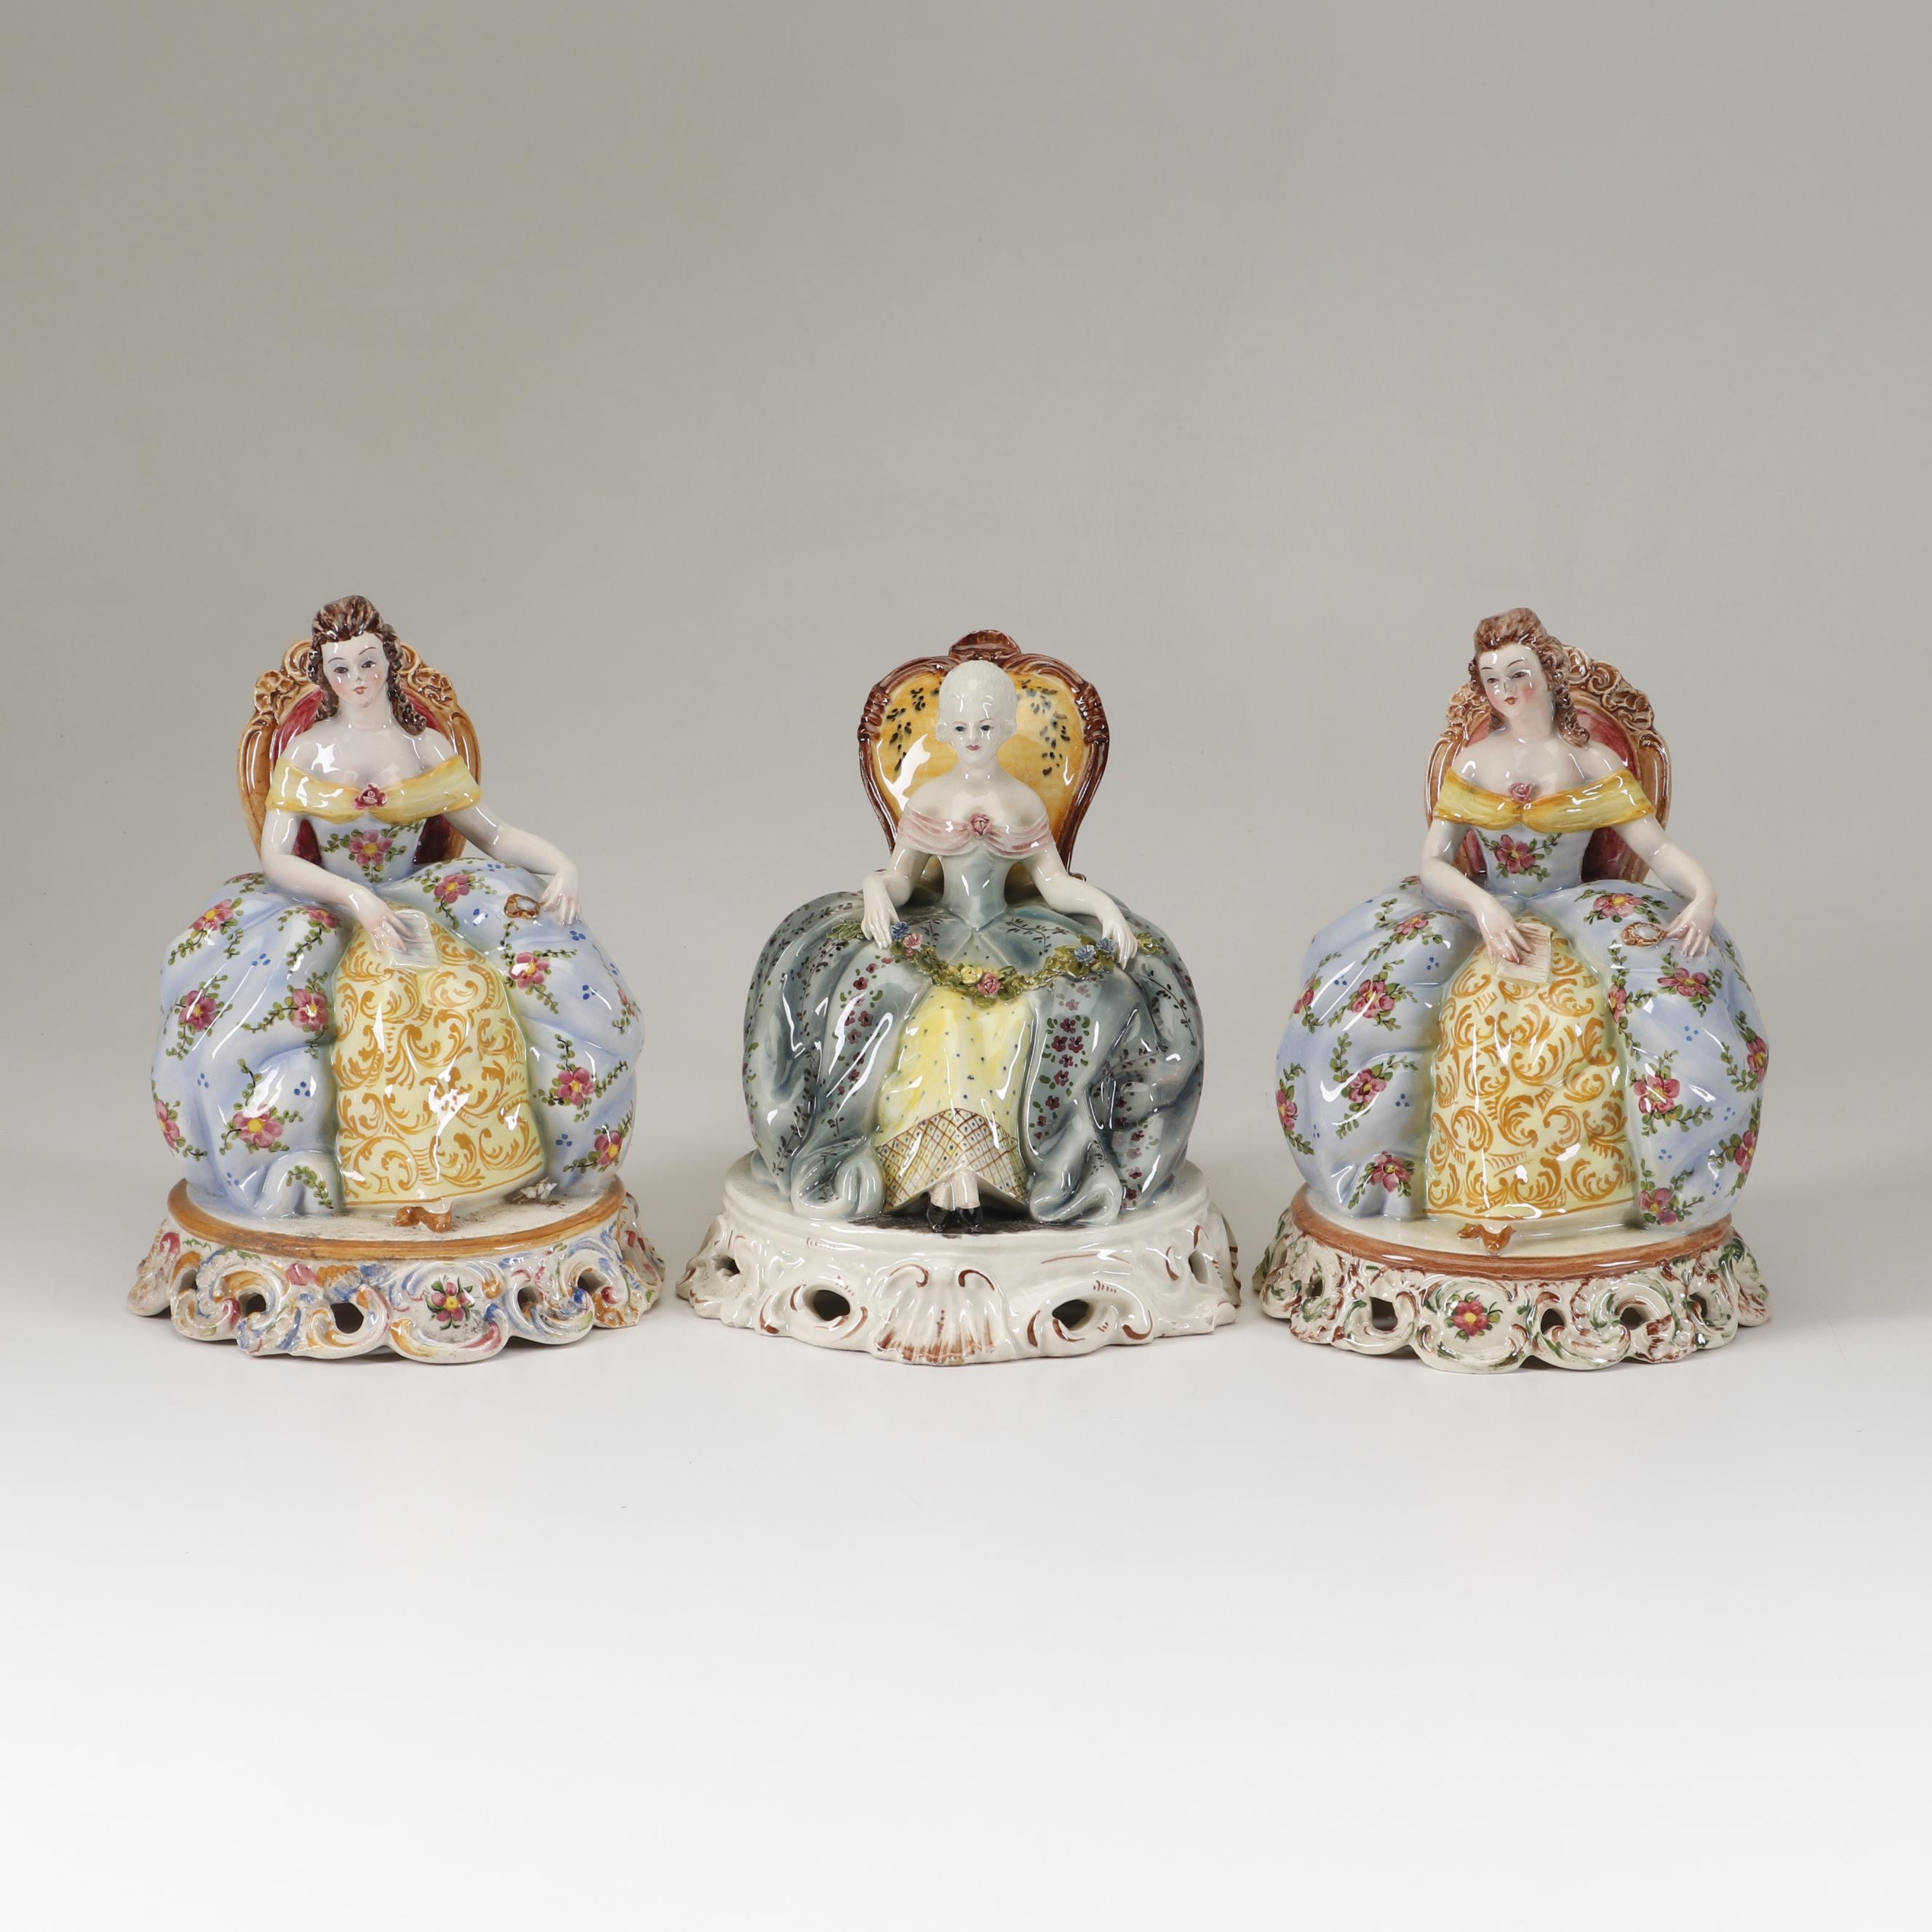 Italian Capodimonte Style Seated Lady Ceramic Figurines